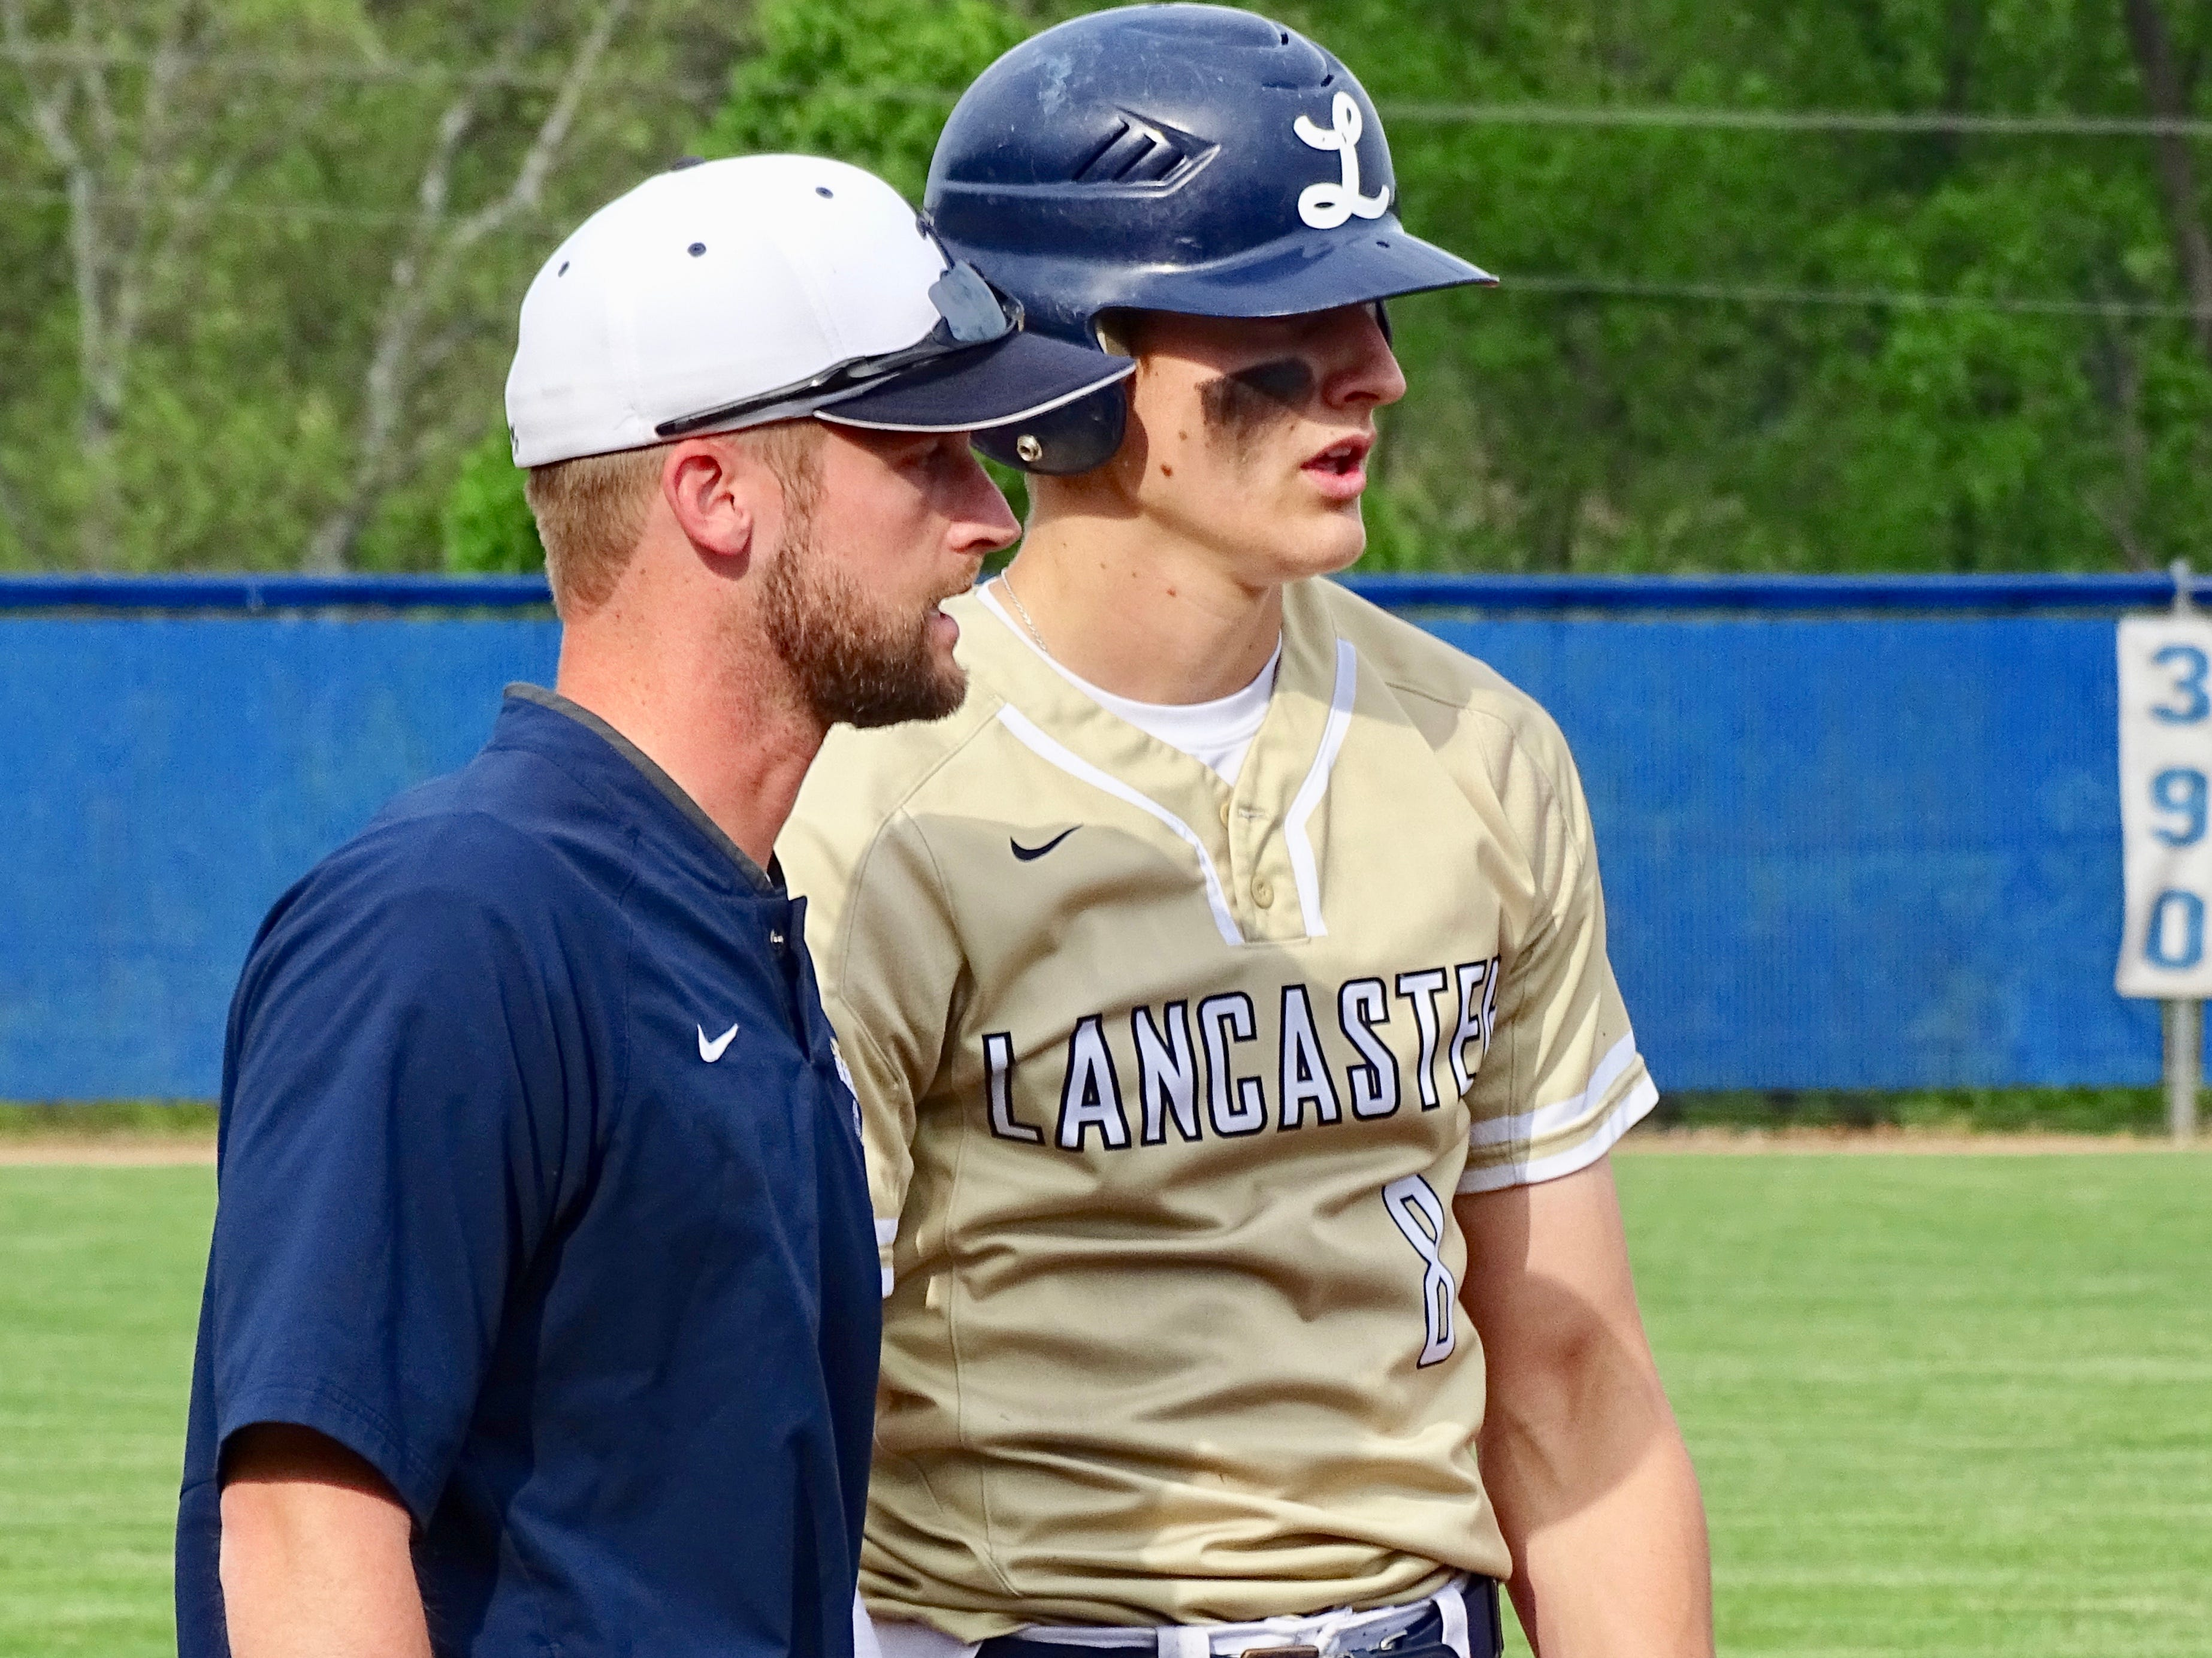 Lancaster coach Corey Conn gives instructions to Evan Sines during the Gales' 5-0 tournament win over Briggs on Wednesday.